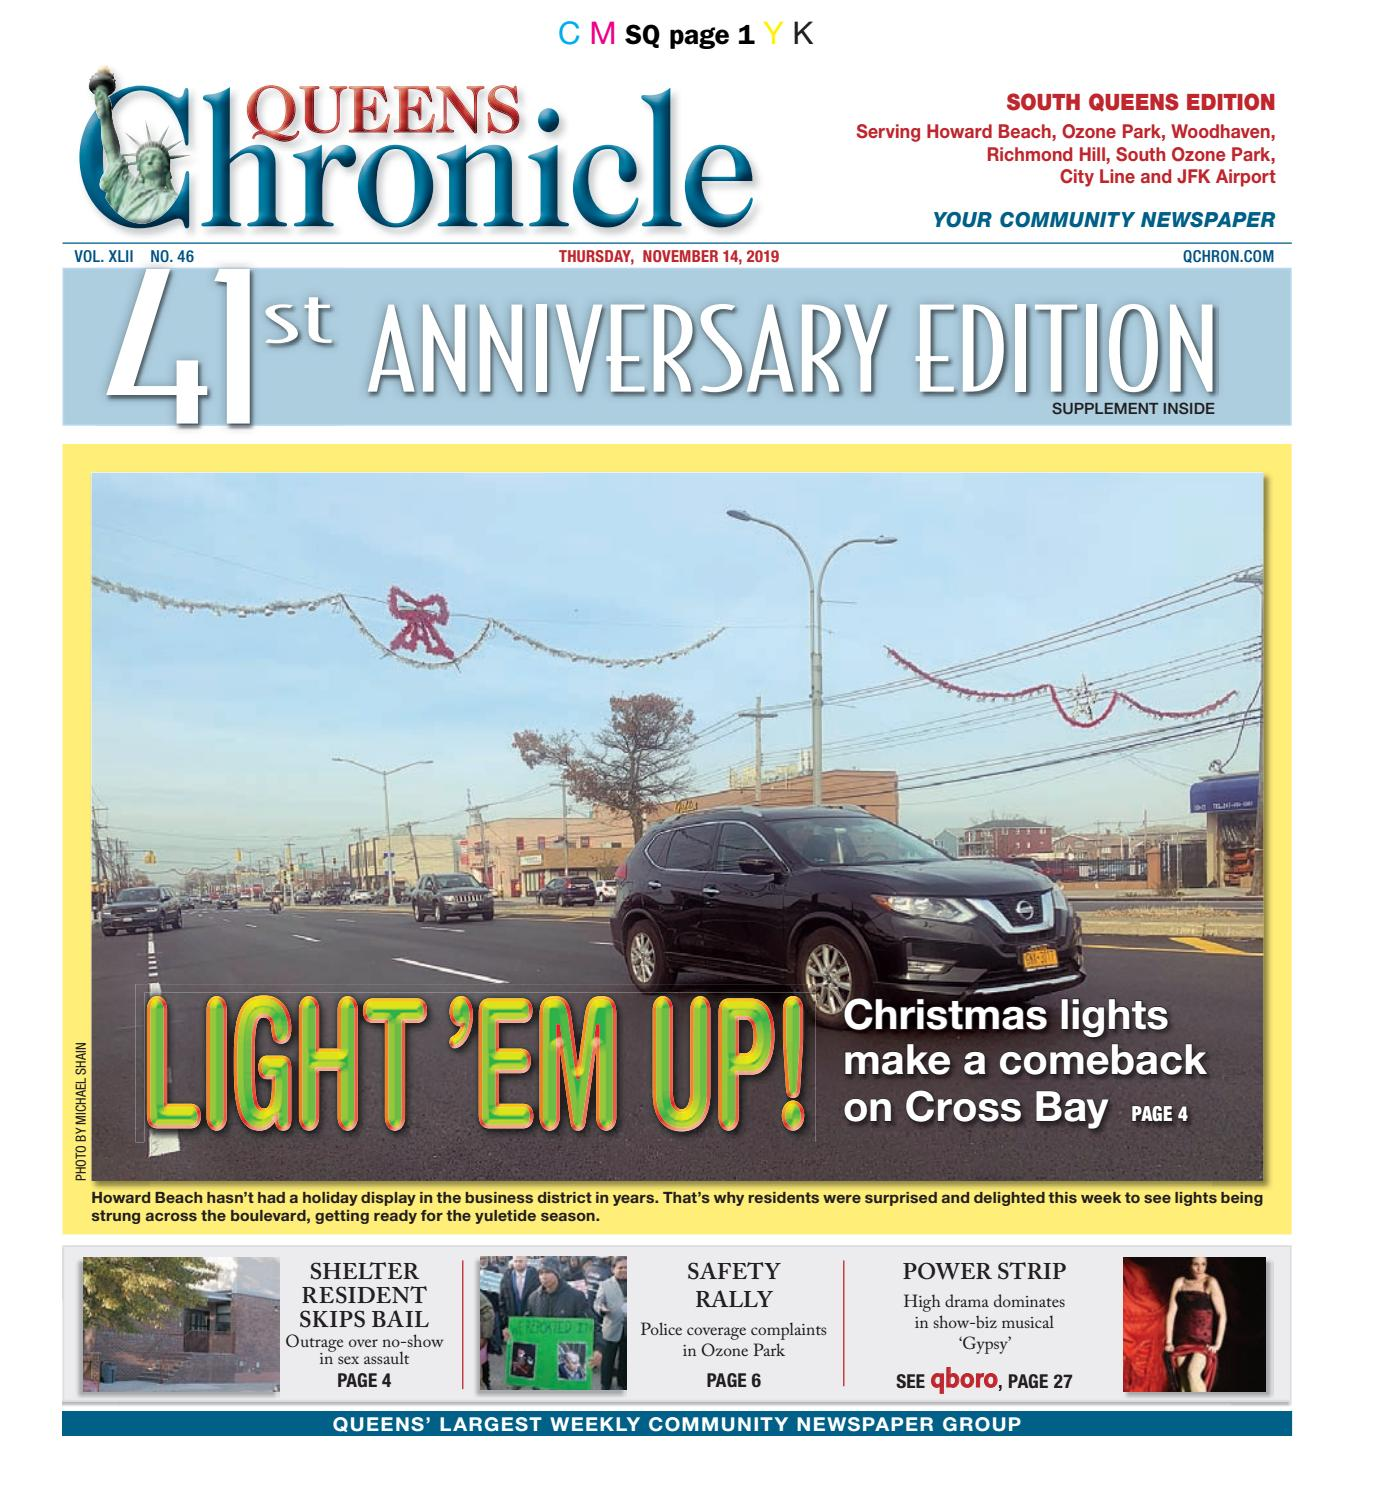 Queens Chronicle South Edition 11 14 19 by Queens Chronicle